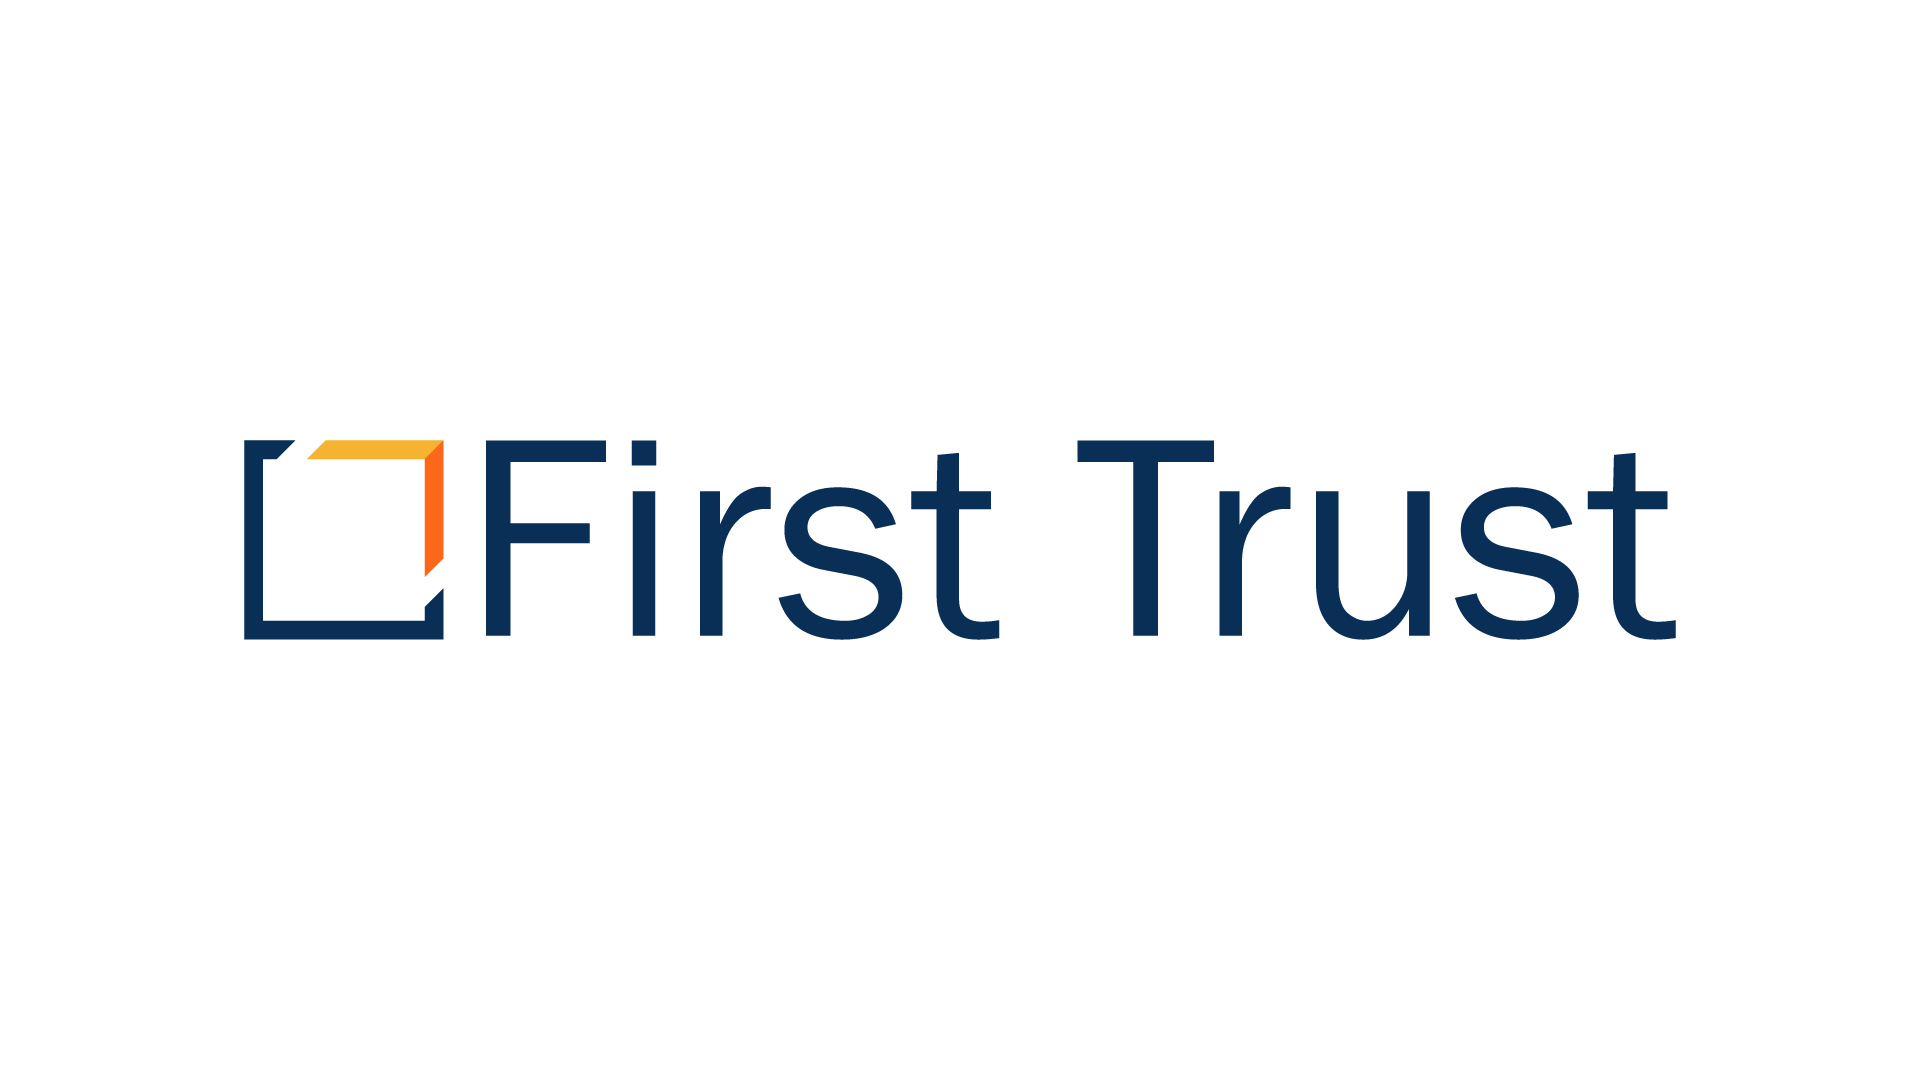 First Trust Launches the First Trust EIP Carbon Impact ETF